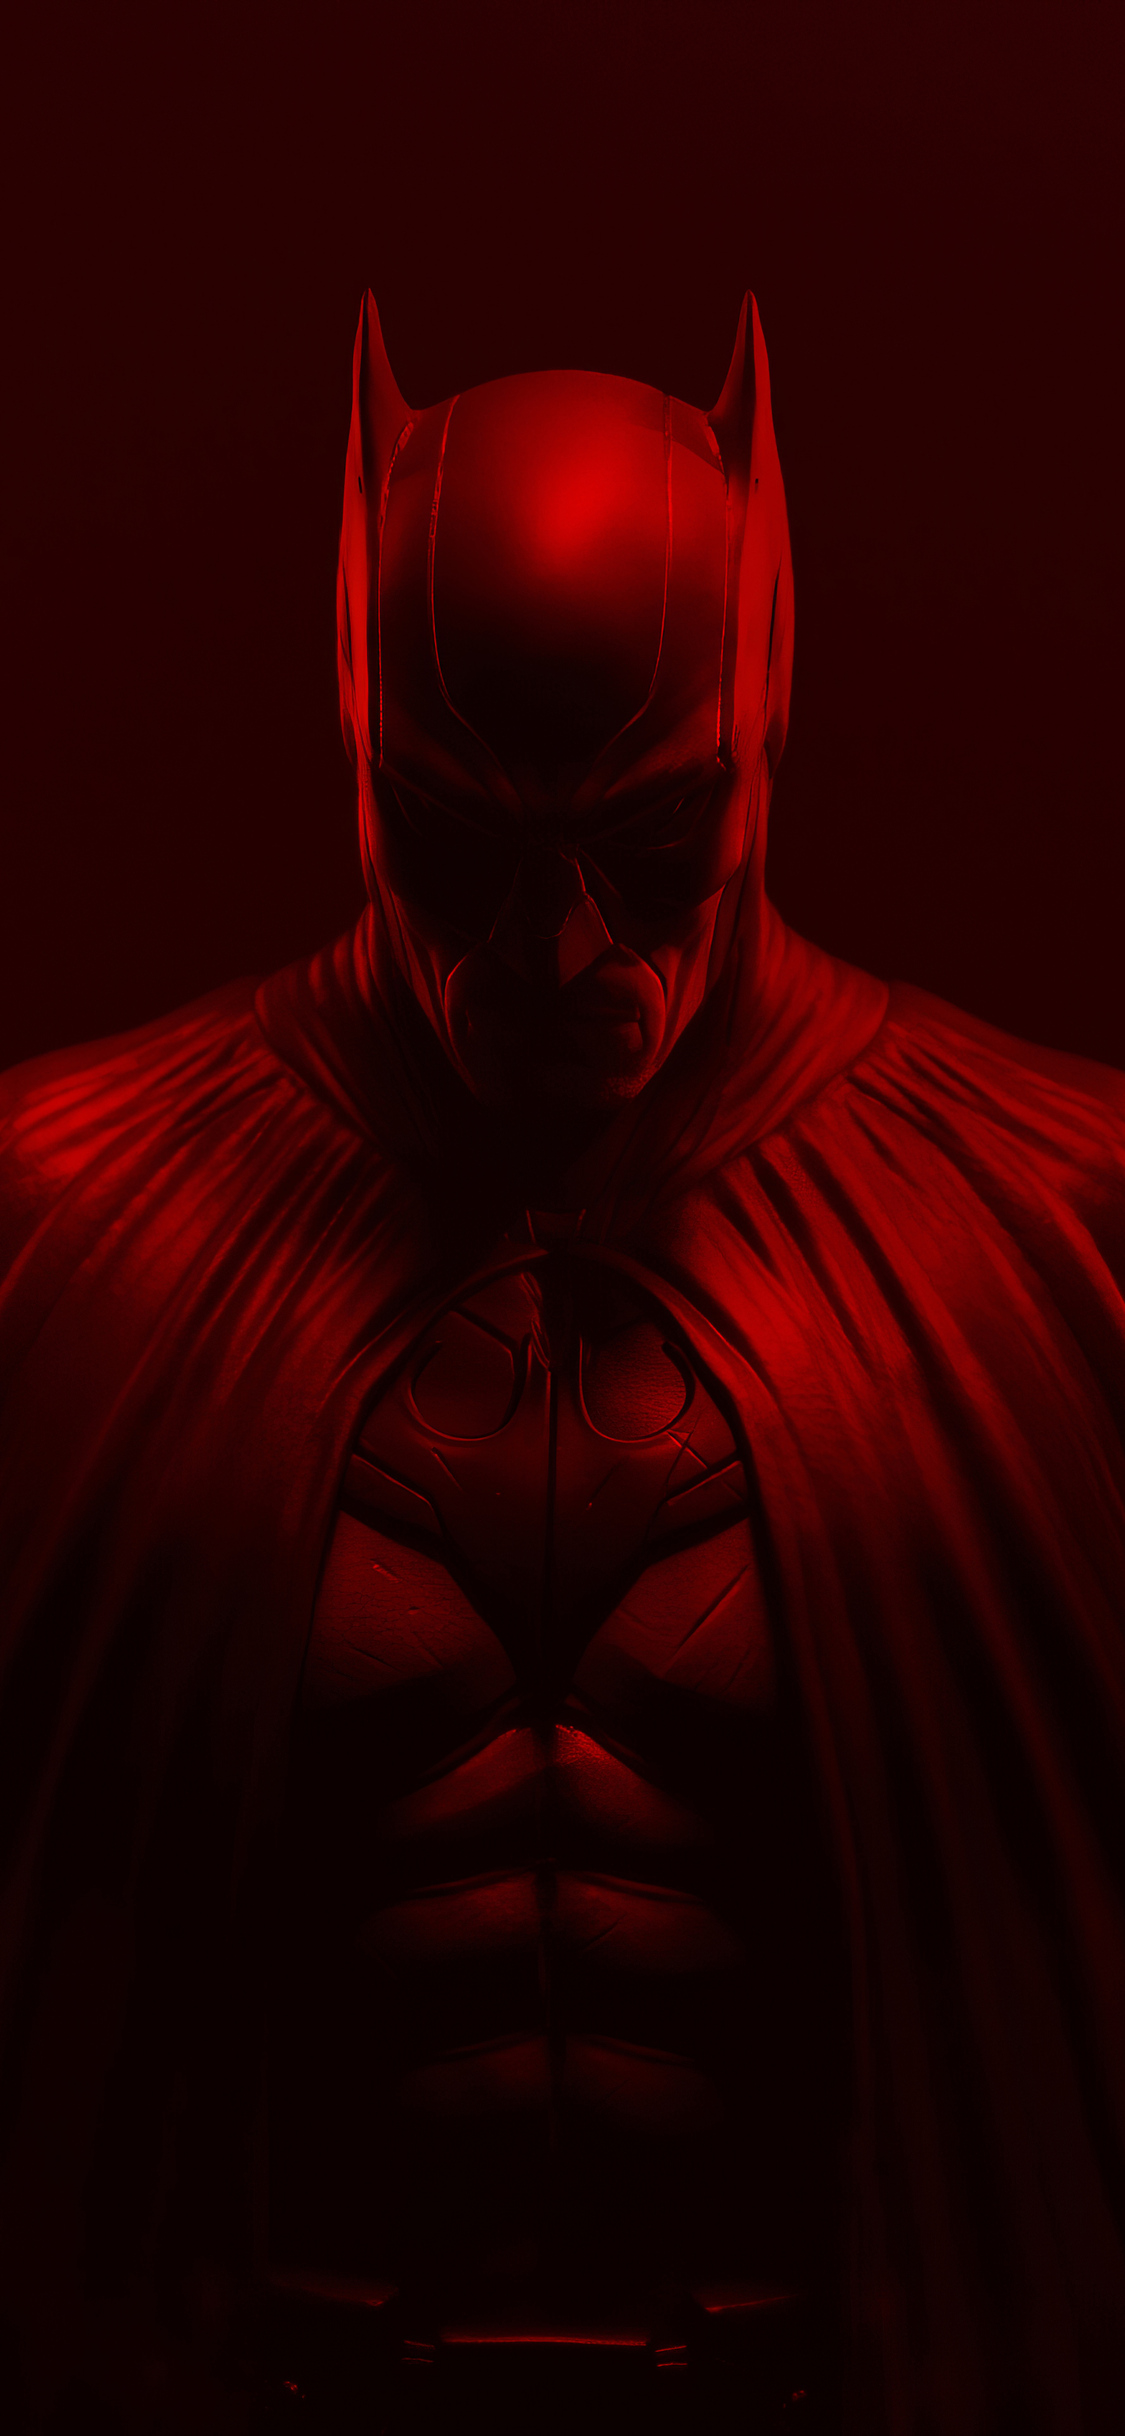 1125x2436 Batman Red Background Iphone Xs Iphone 10 Iphone X Hd 4k Wallpapers Images Backgrounds Photos And Pictures